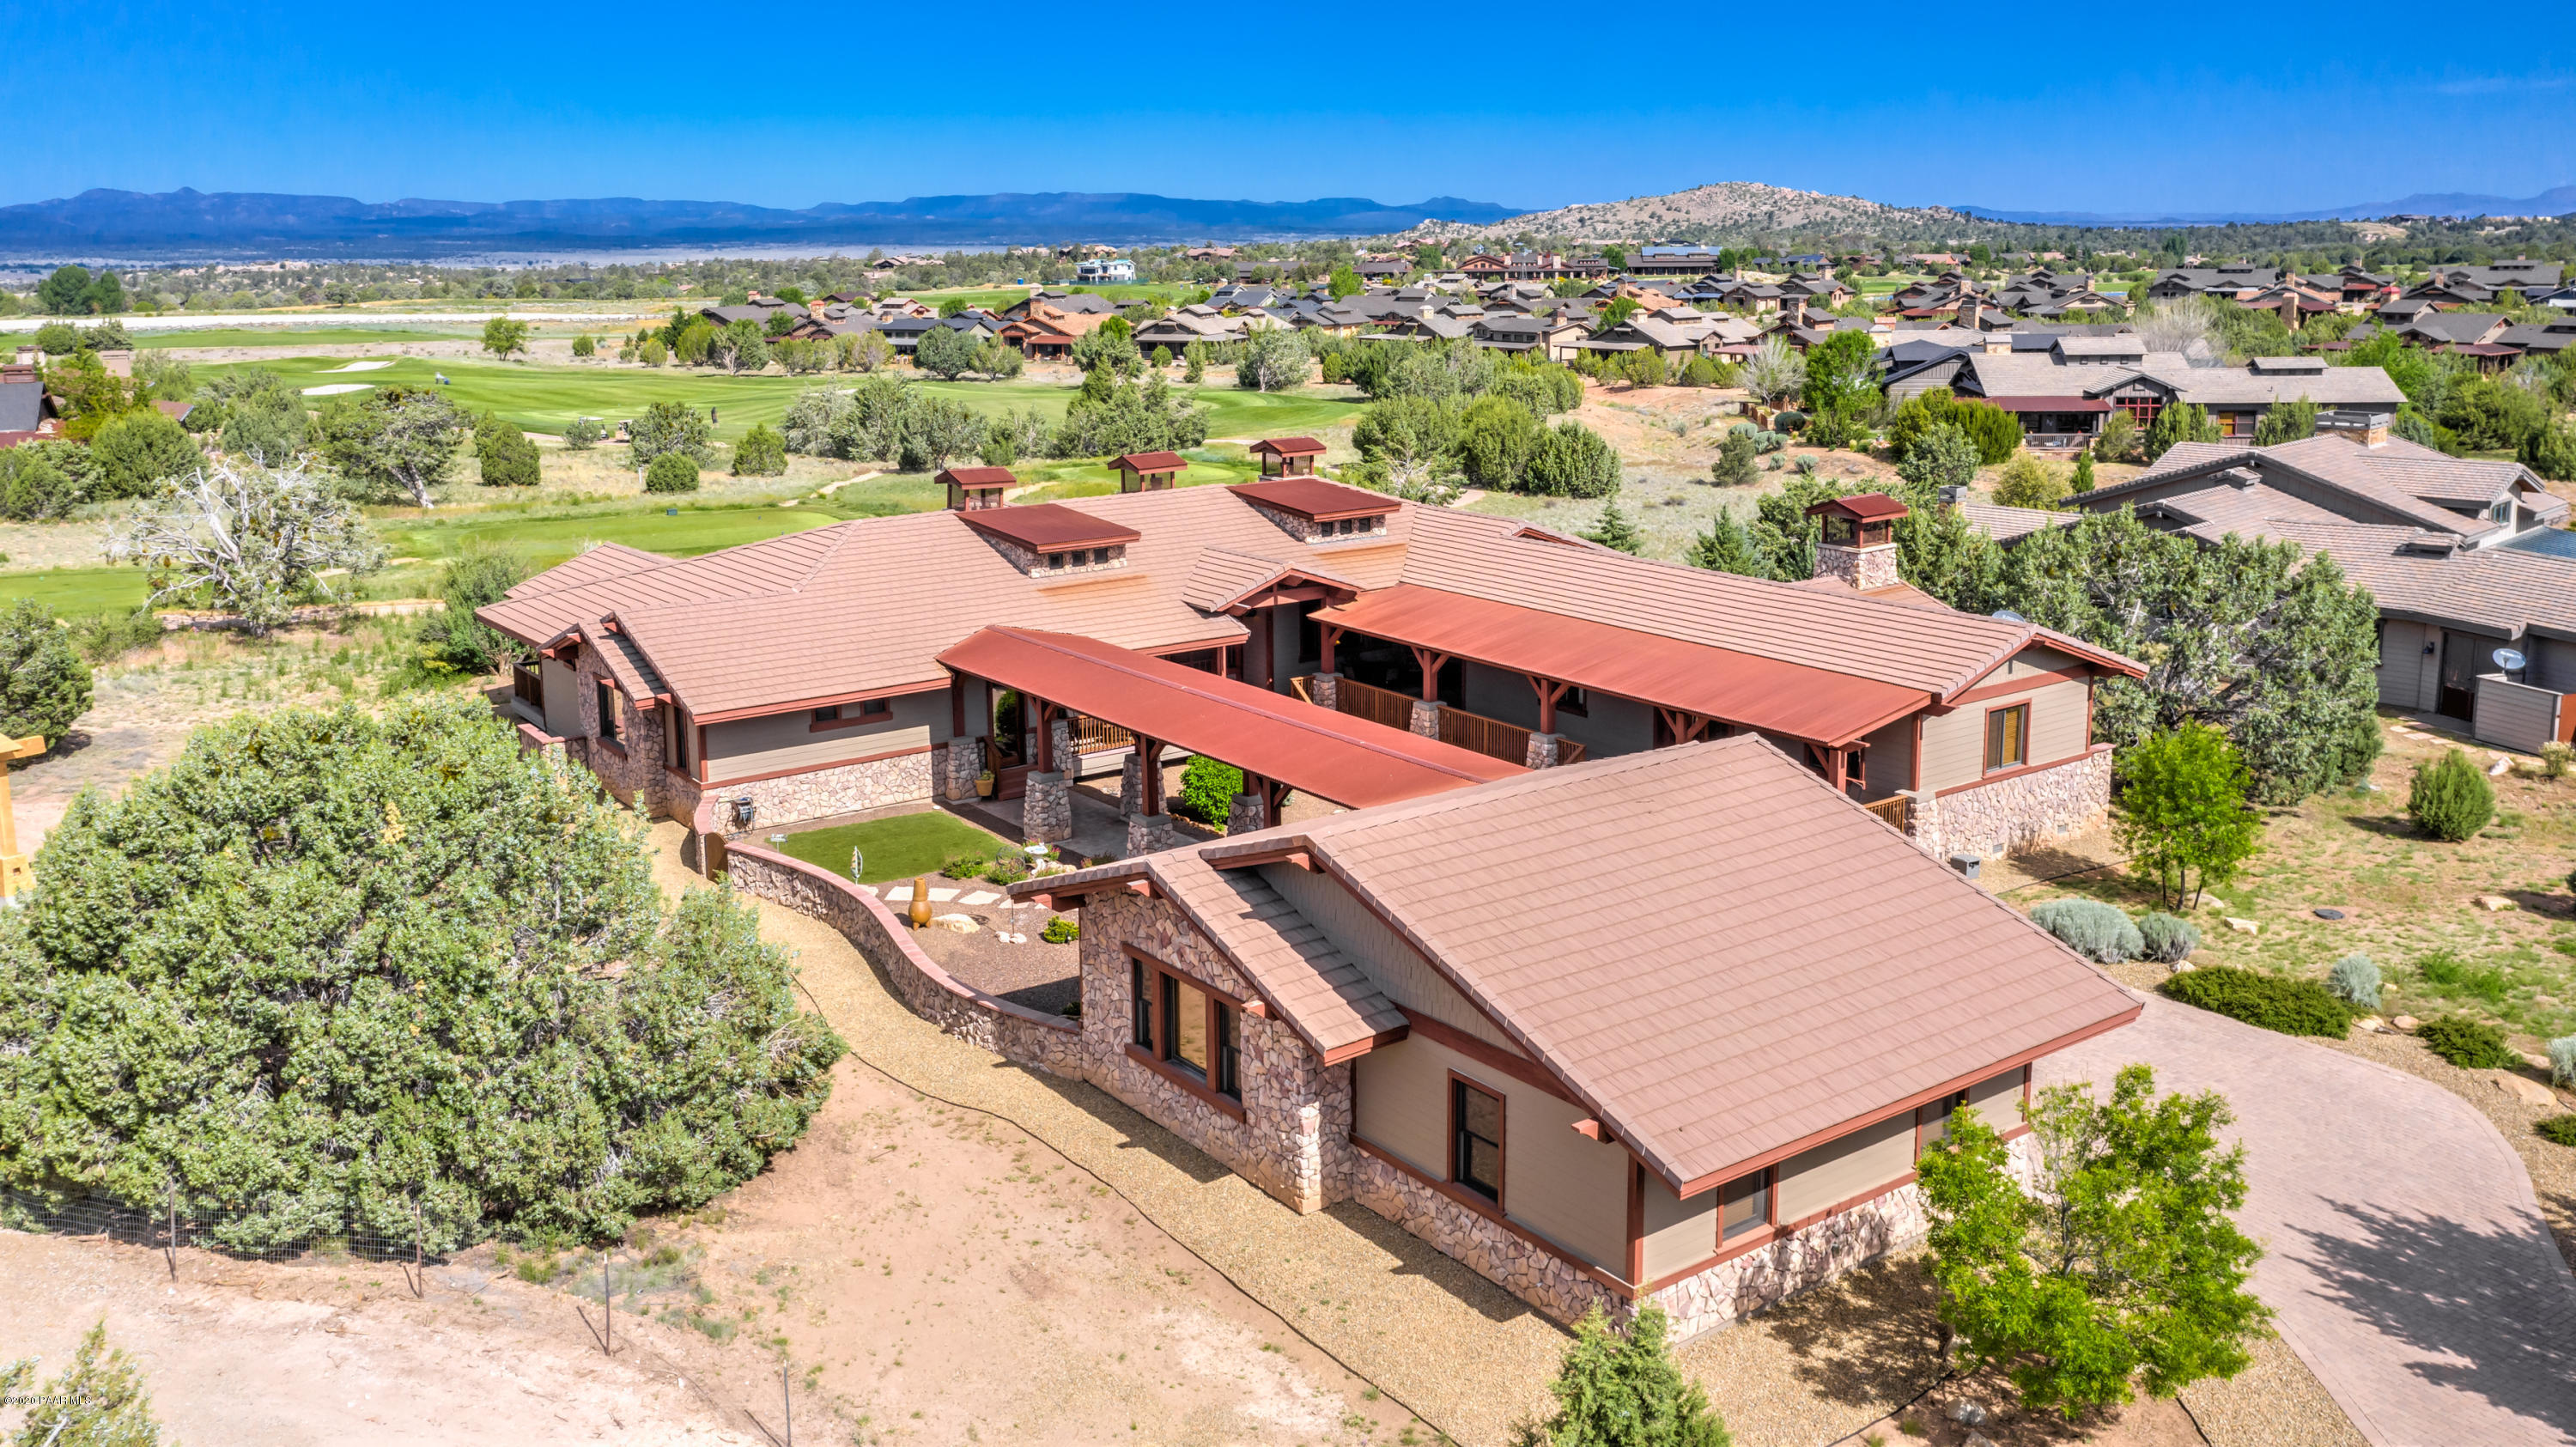 Photo of 14780 Double Adobe, Prescott, AZ 86305